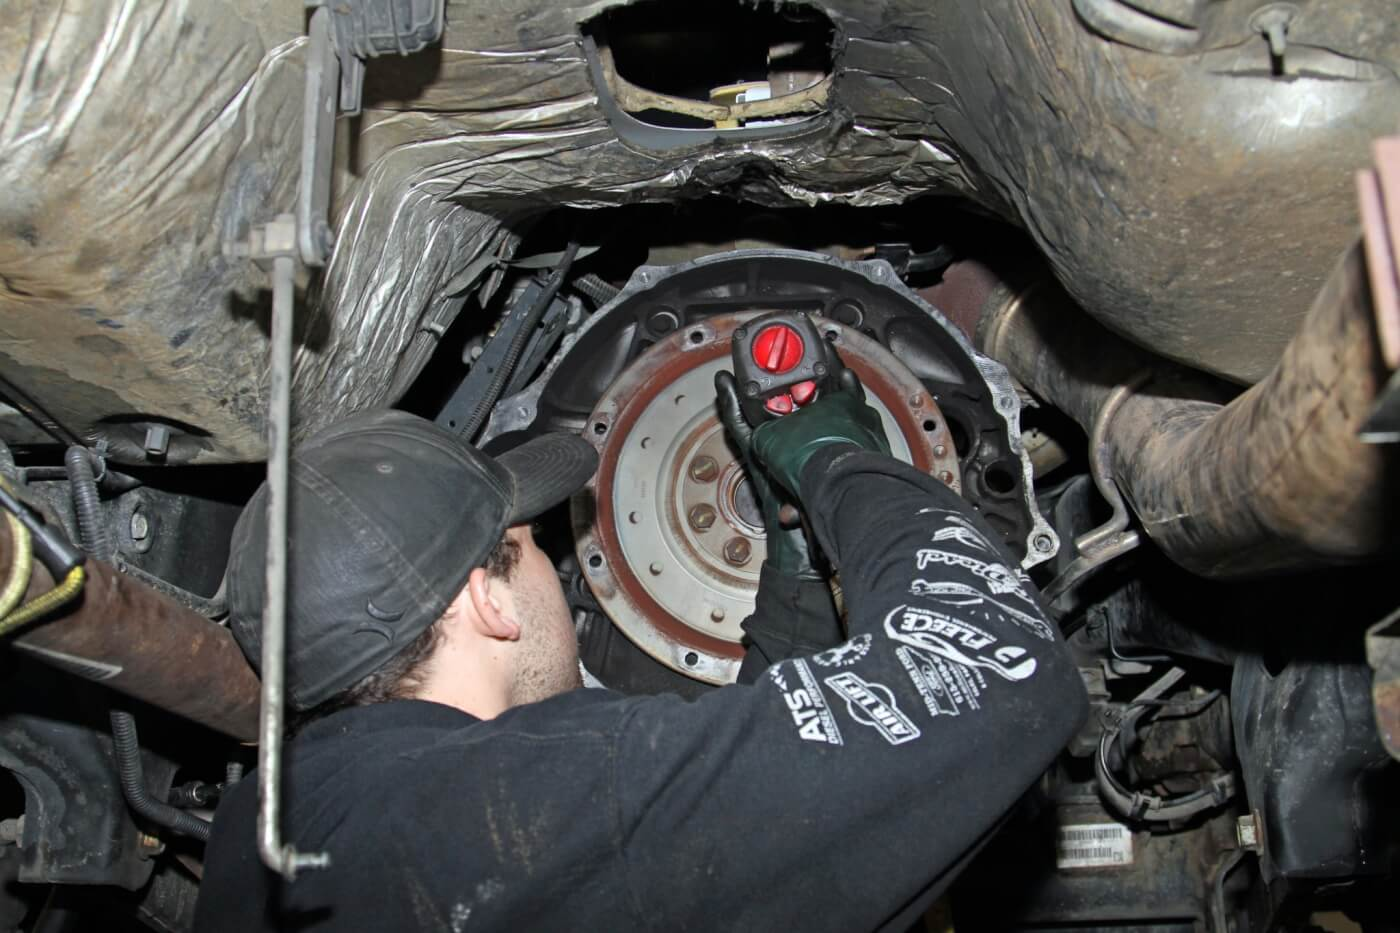 10. The flex plate had to be removed from the crankshaft to install the new single-mass South Bend Clutch flywheel.